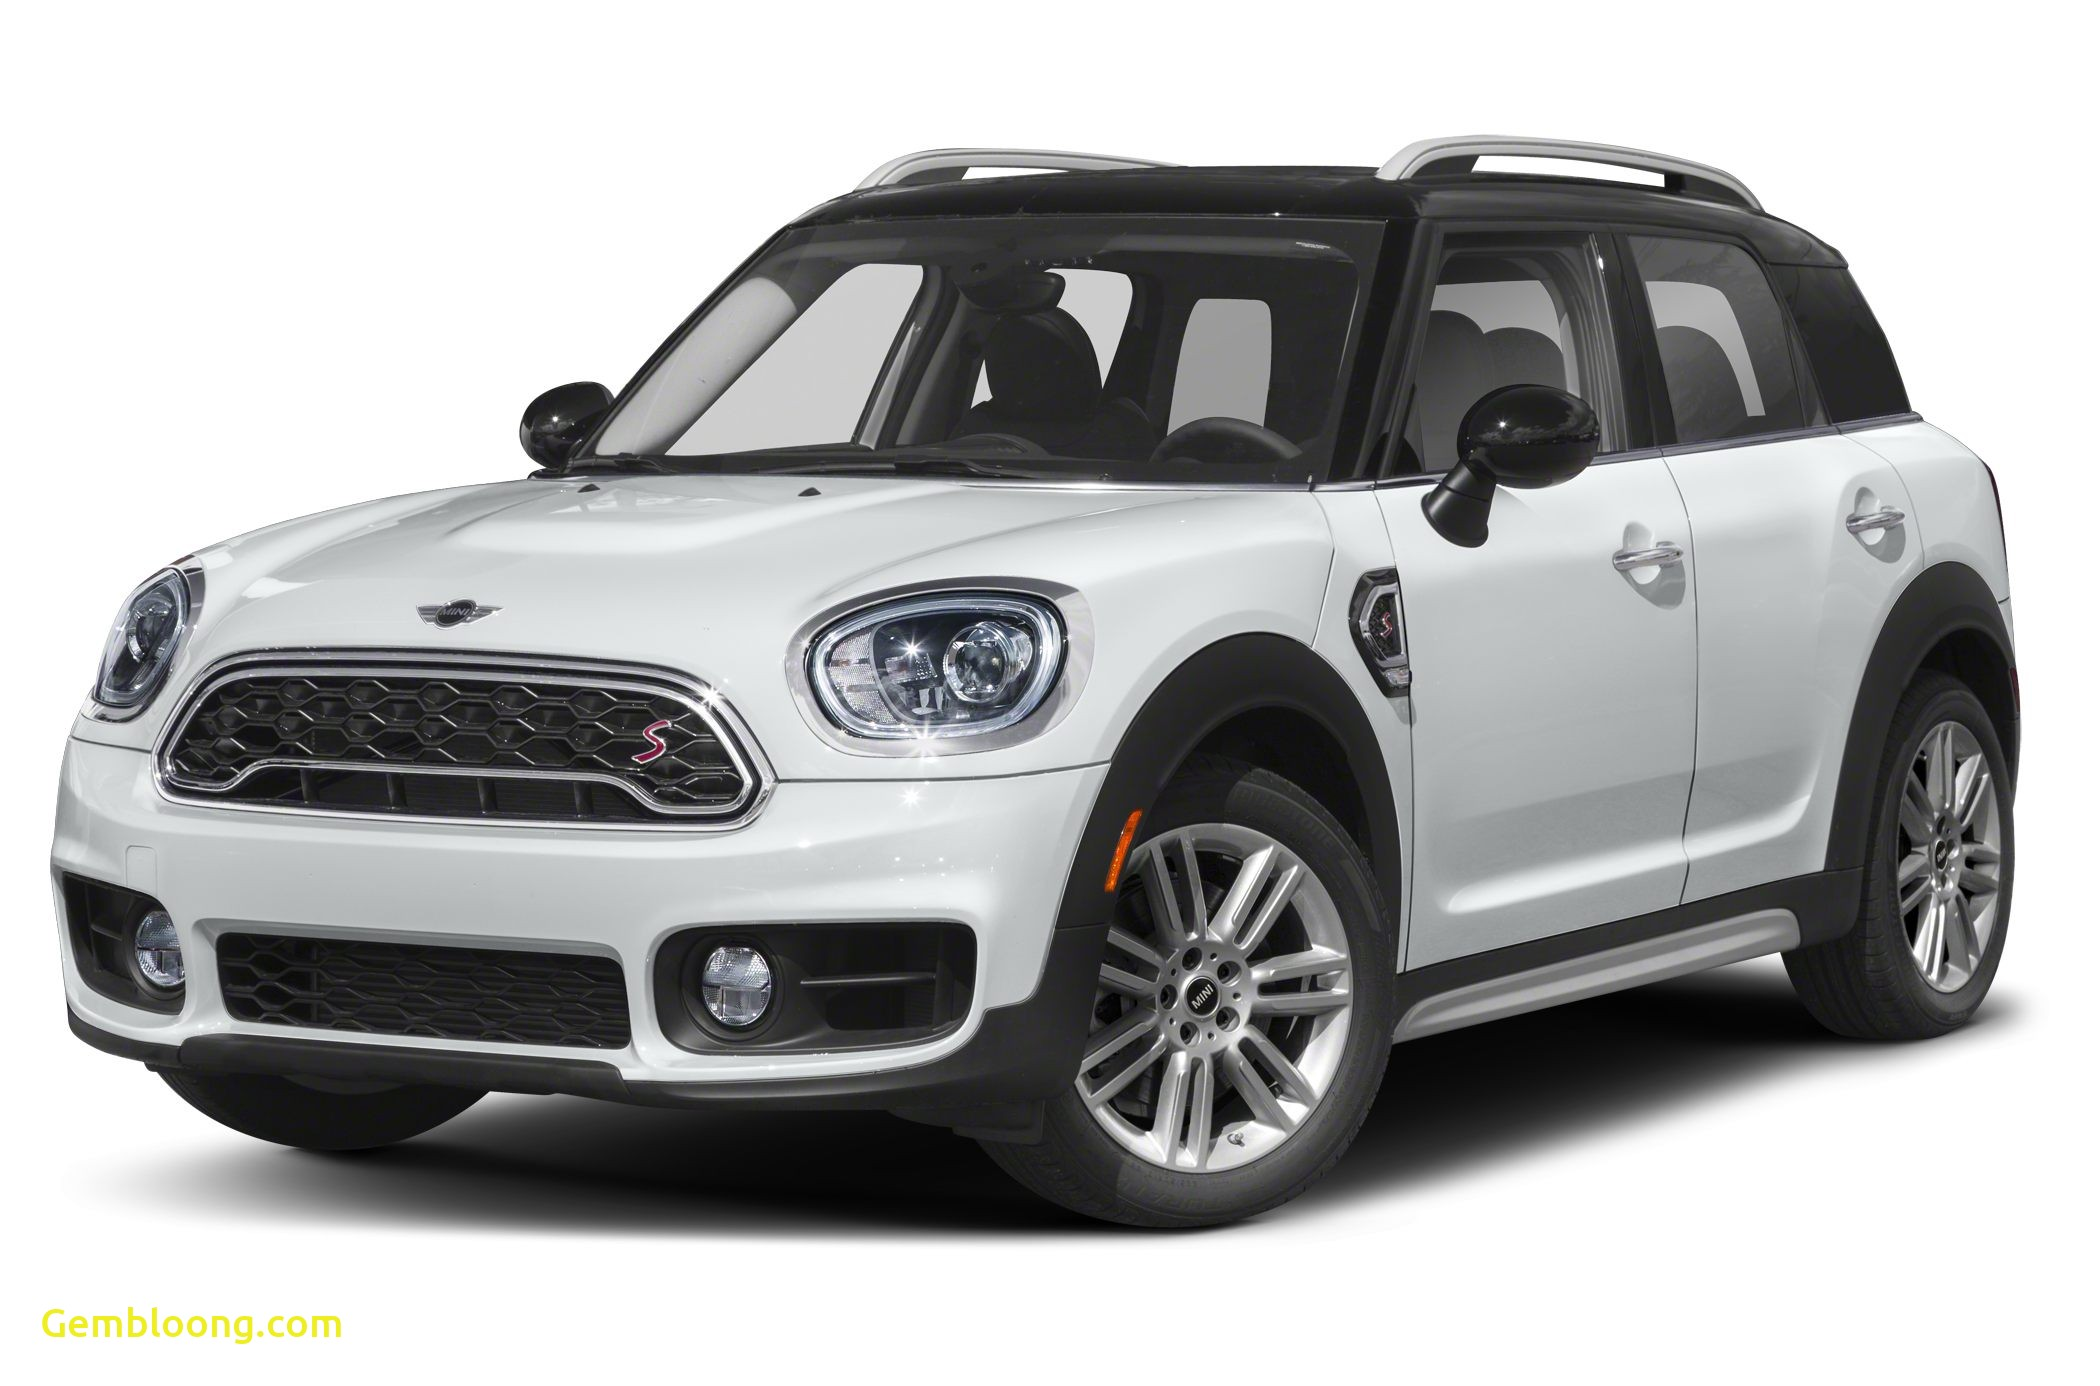 Mini Cooper for Sale Near Me Inspirational 2018 Mini Countryman Cooper S 4dr All Wheel Drive All4 Sport Utility Pricing and Options